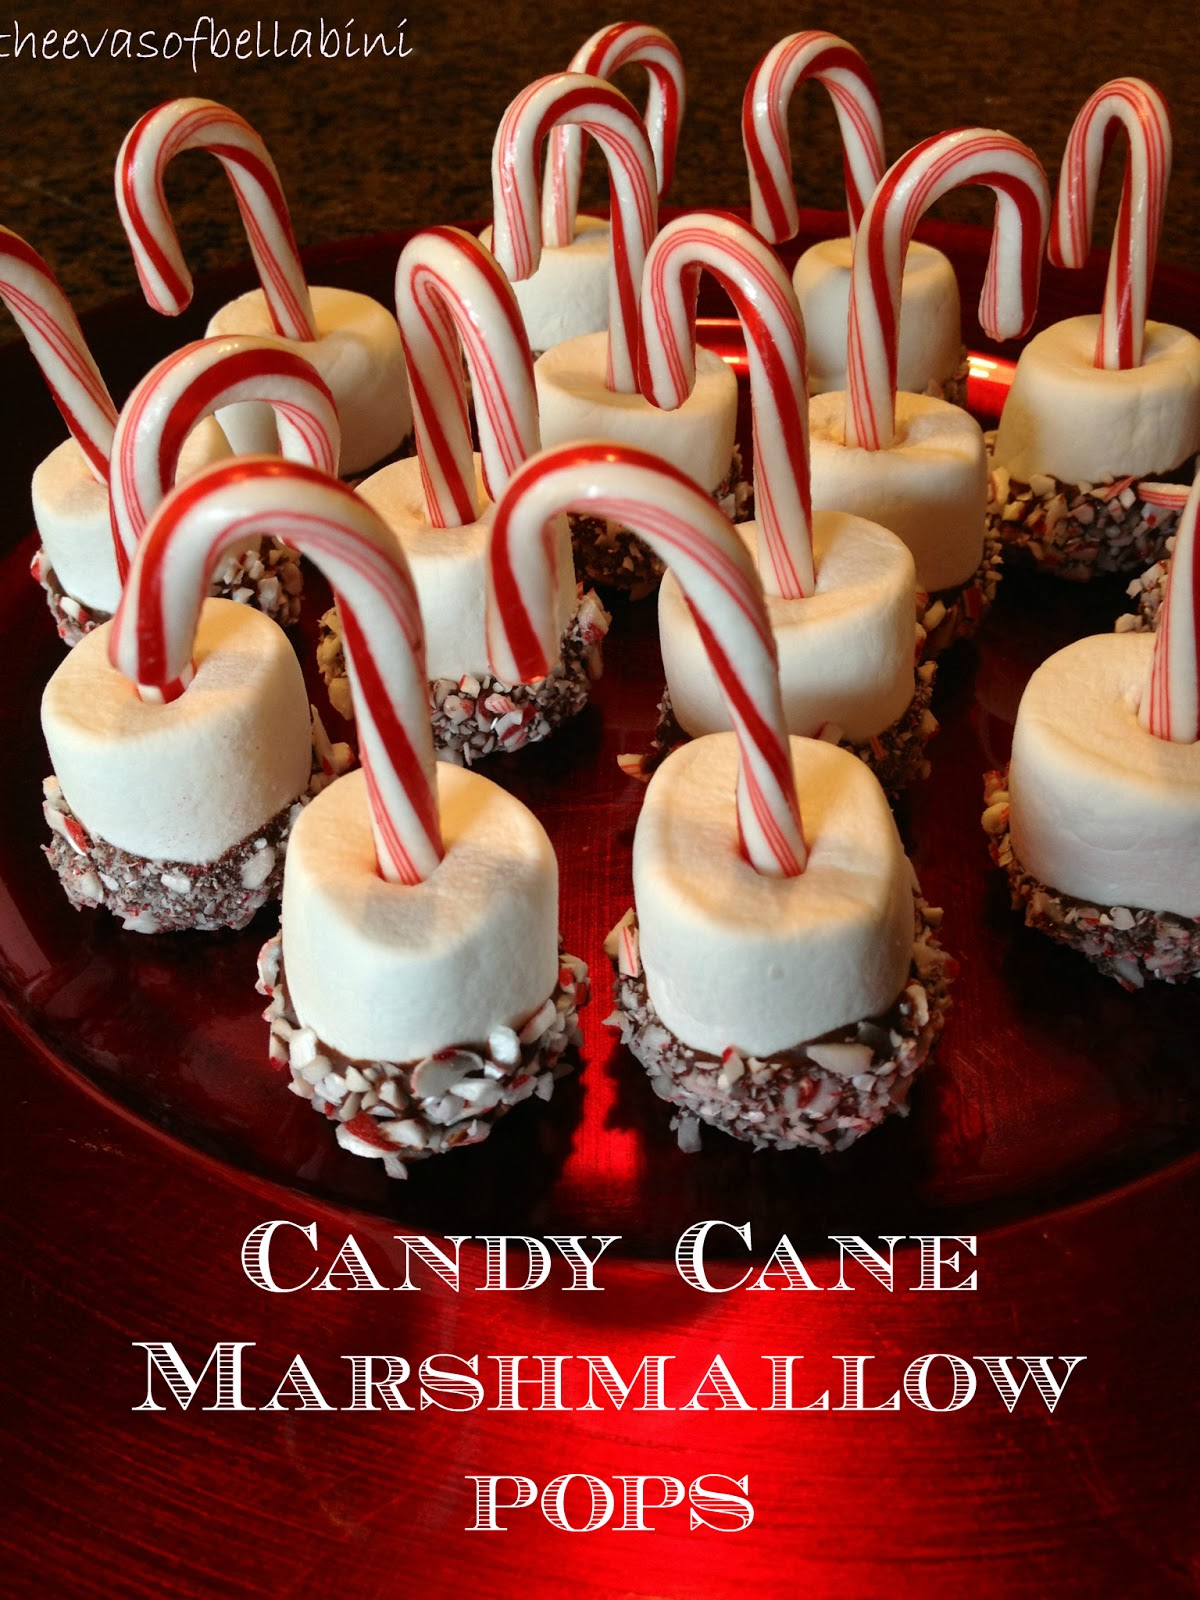 Lemon Drops and Cupcakes: Candy Cane Marshmallow Pops